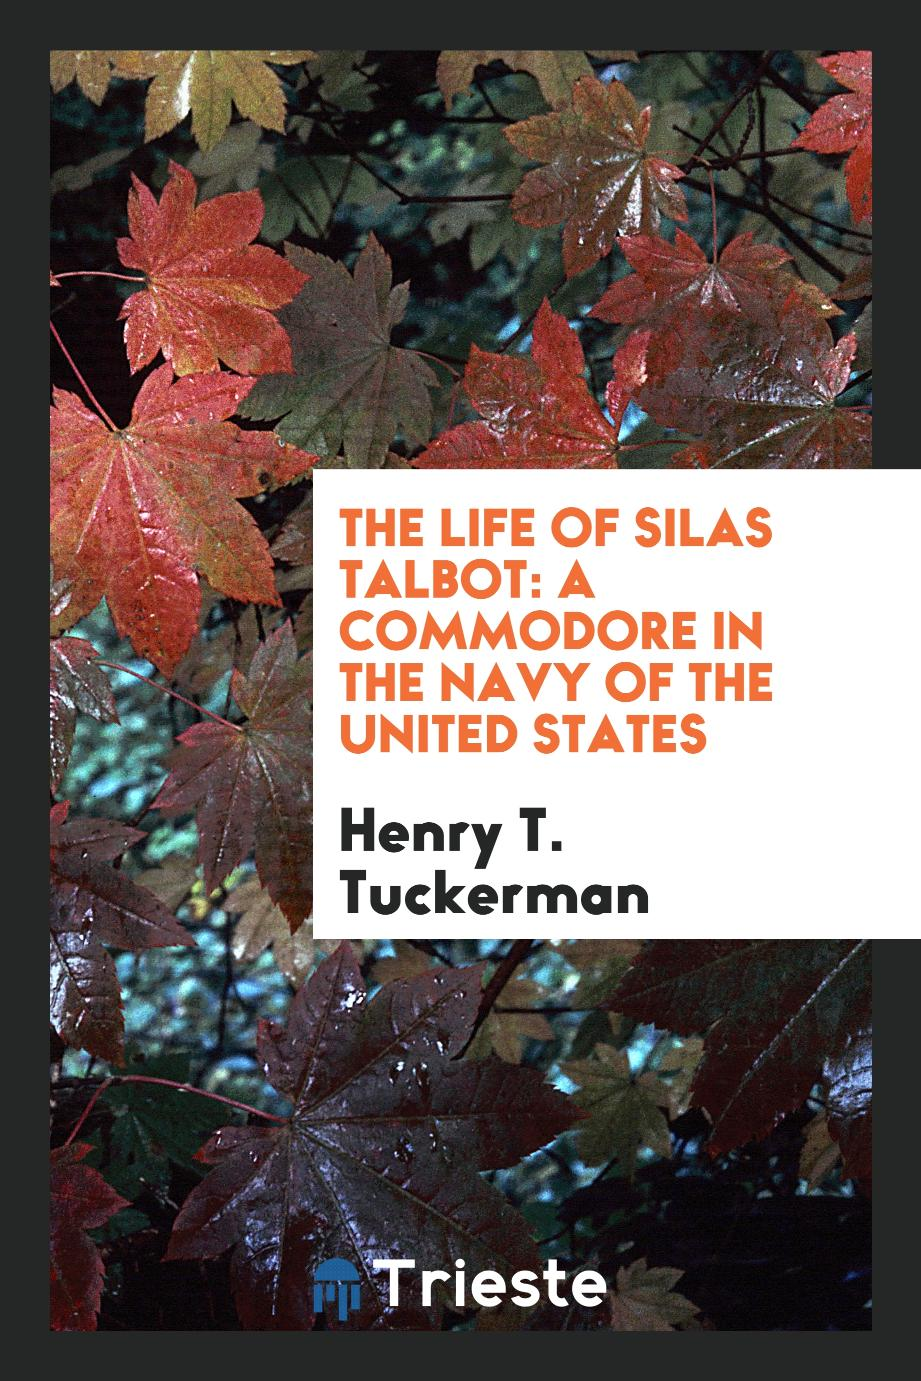 The Life of Silas Talbot: A Commodore in the Navy of the United States